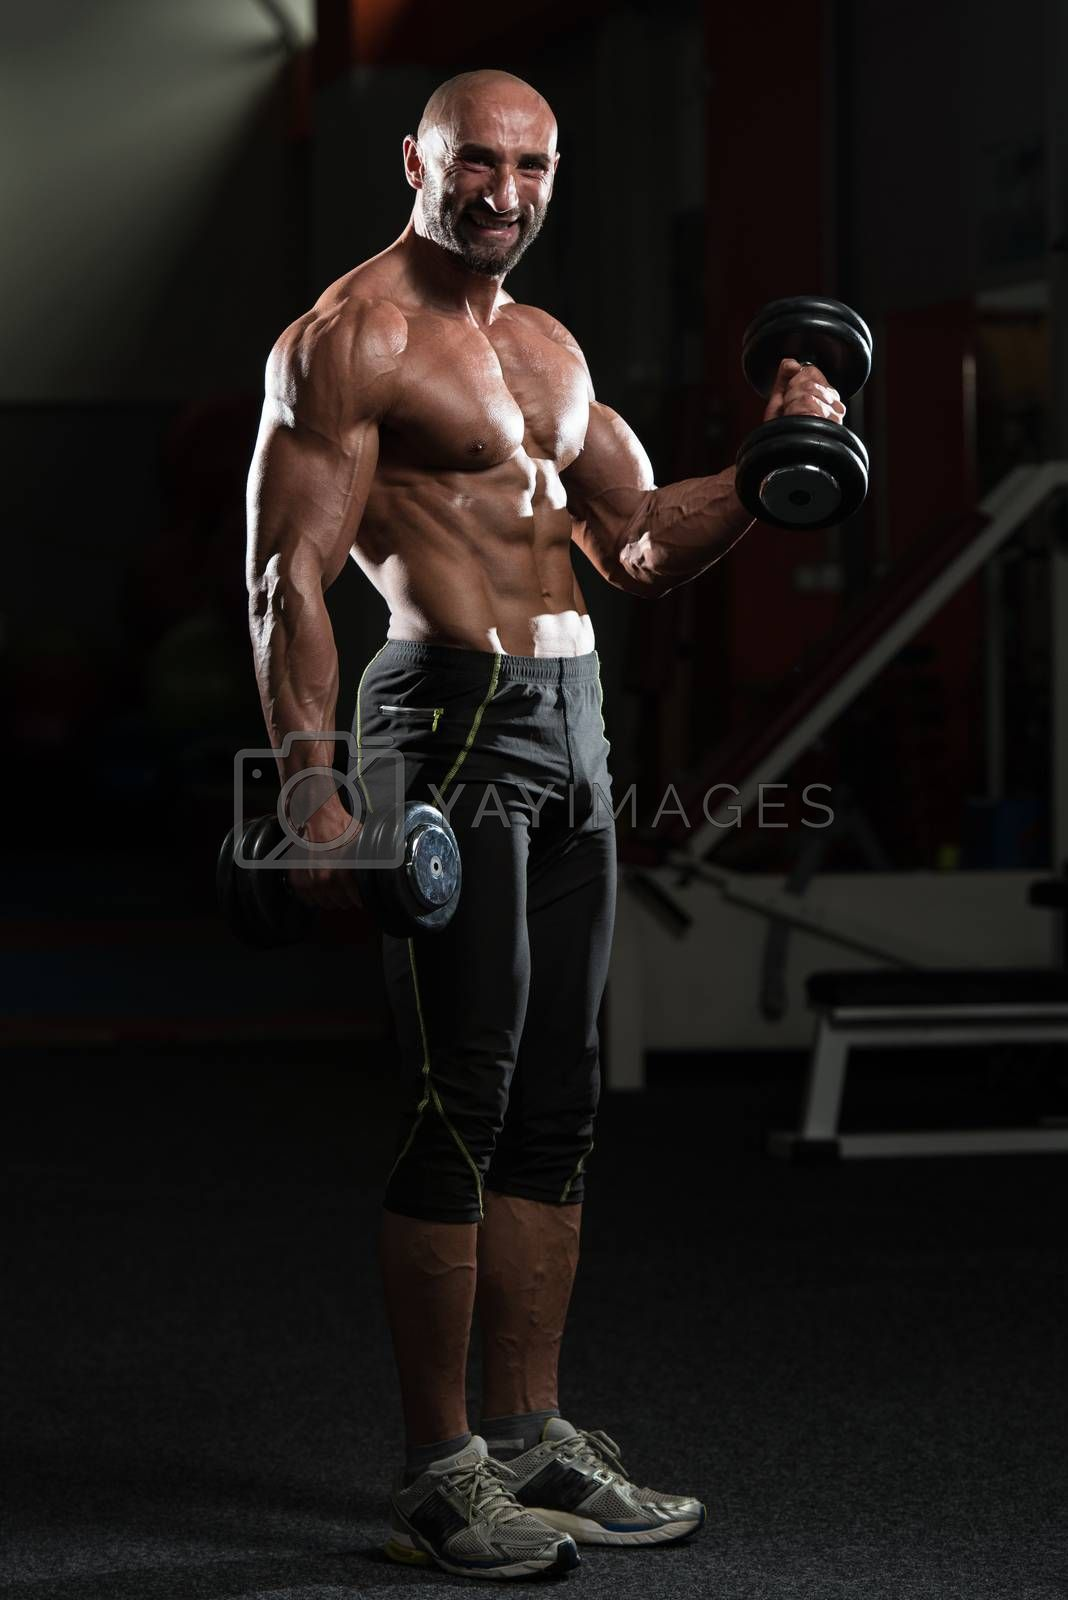 Mature Man Working Out Biceps In A Health Club